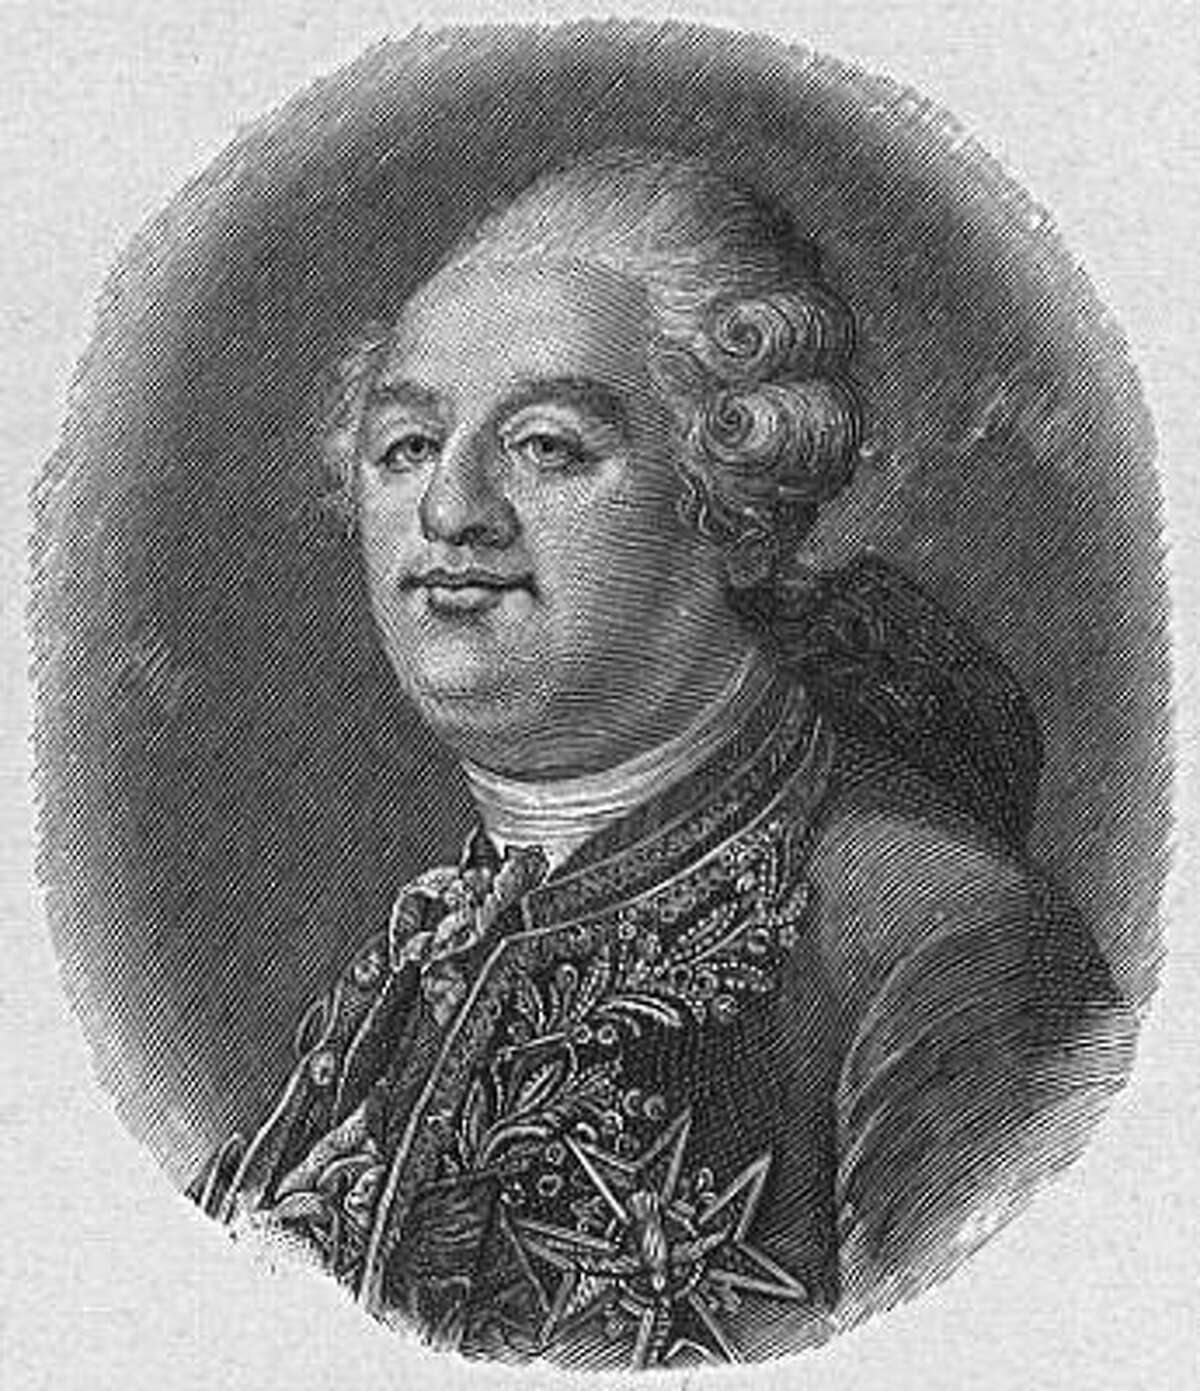 Louis XVI (1754-1793) King Louis XVI was guillotined under the name Citoyen (Citizen) Louis Capet. He was one of at least 18,000 and maybe as many as 40,000 to meet that fate.